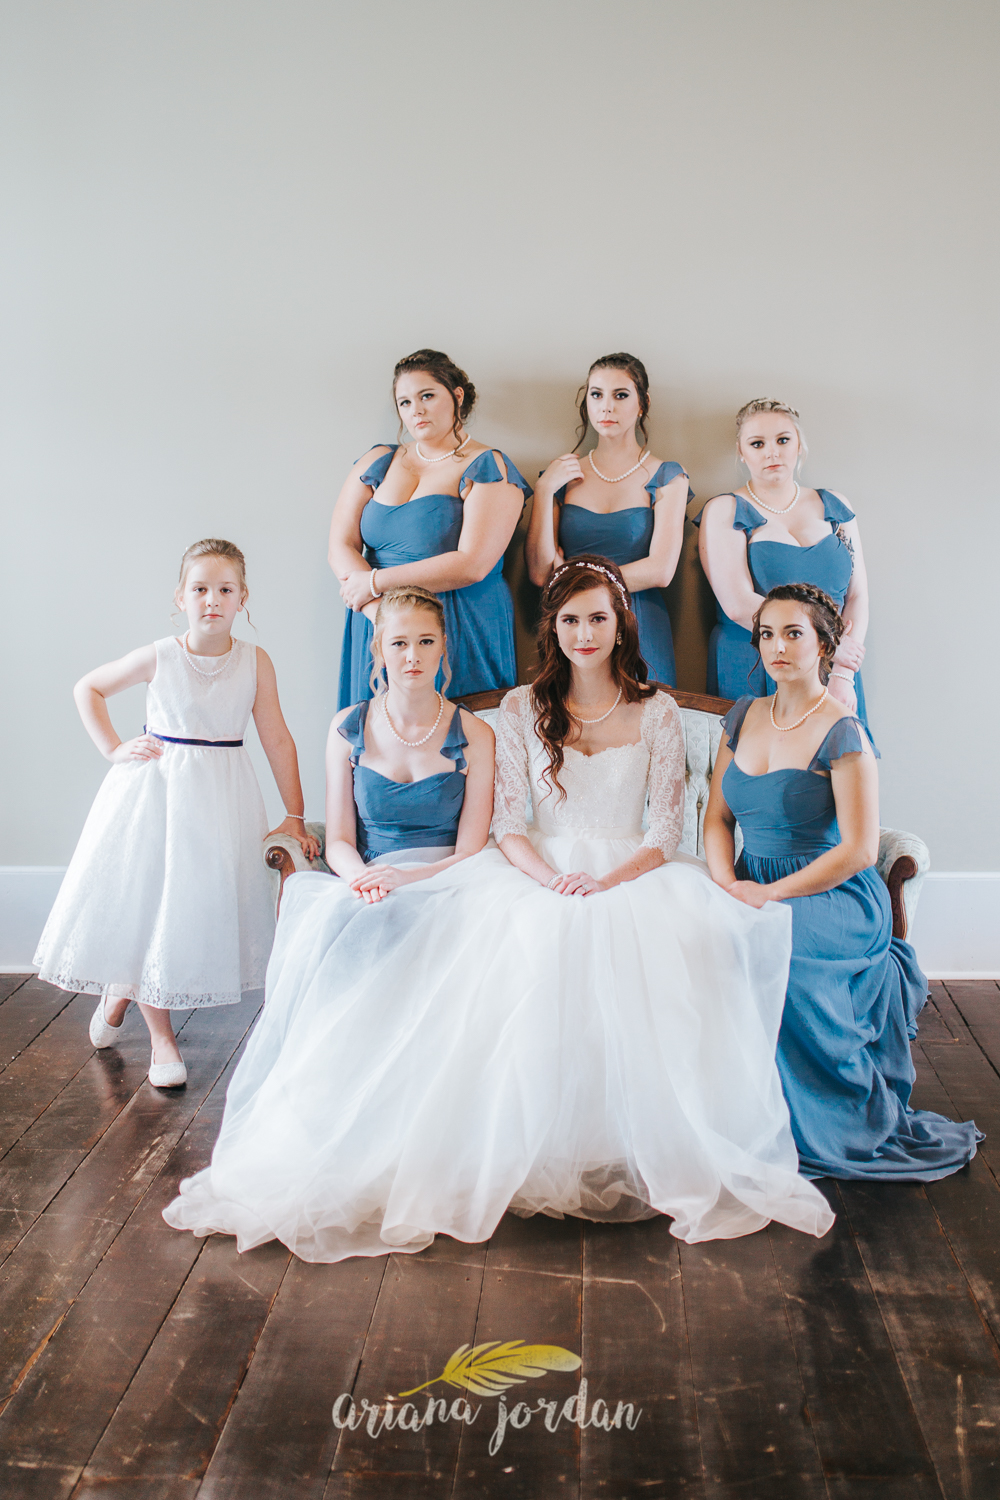 083 - Ariana Jordan - Kentucky Wedding Photographer - Landon & Tabitha 6362.jpg